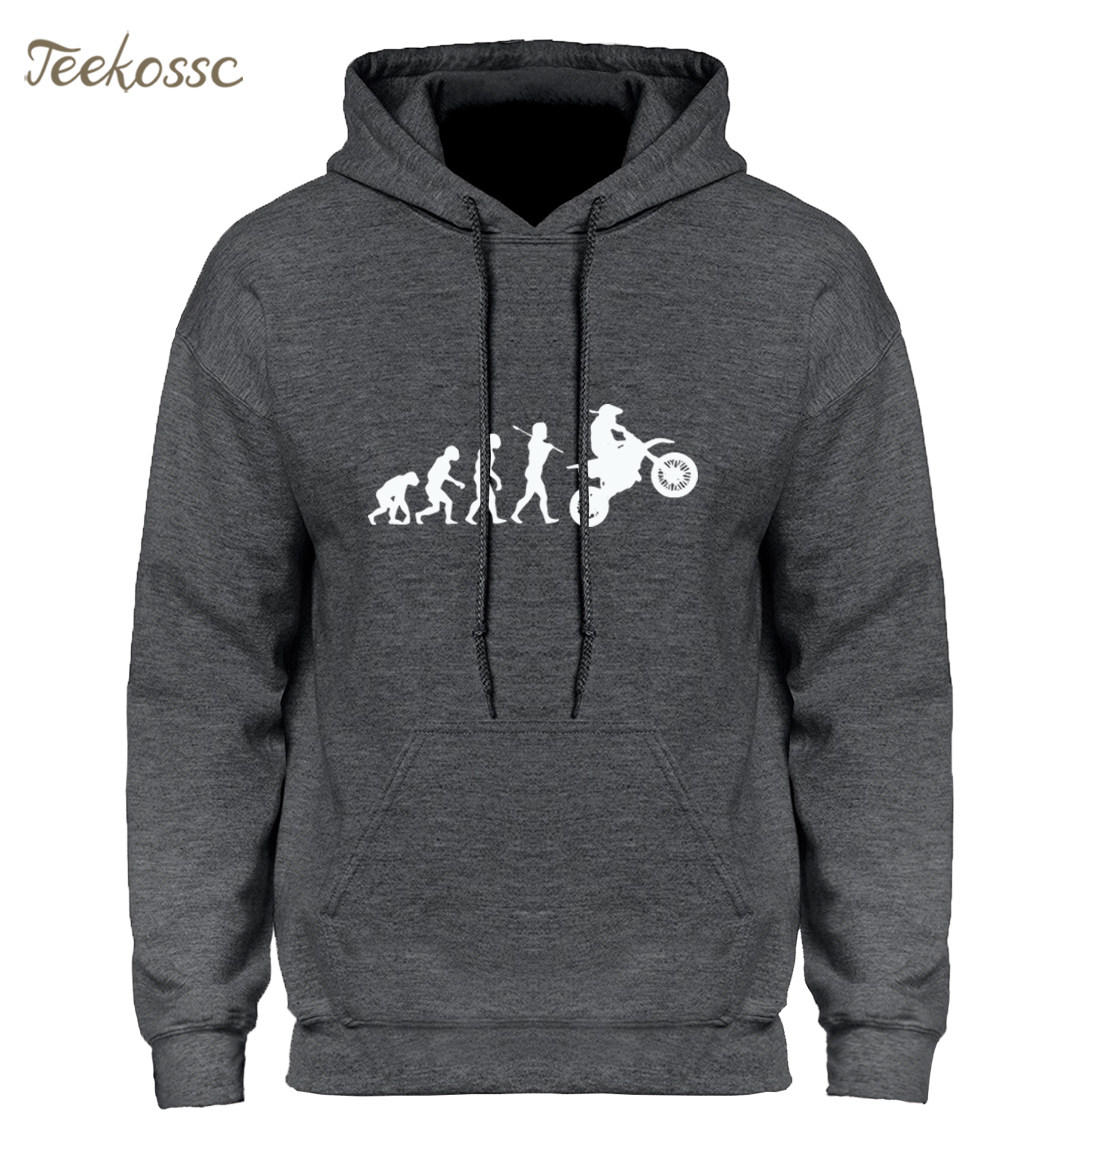 Dirtbike Evolution Motocross Hoodie Hoodies Sweatshirt Men Winter Autumn Hooded Hoody Homens Hip Hop Black White High Quality